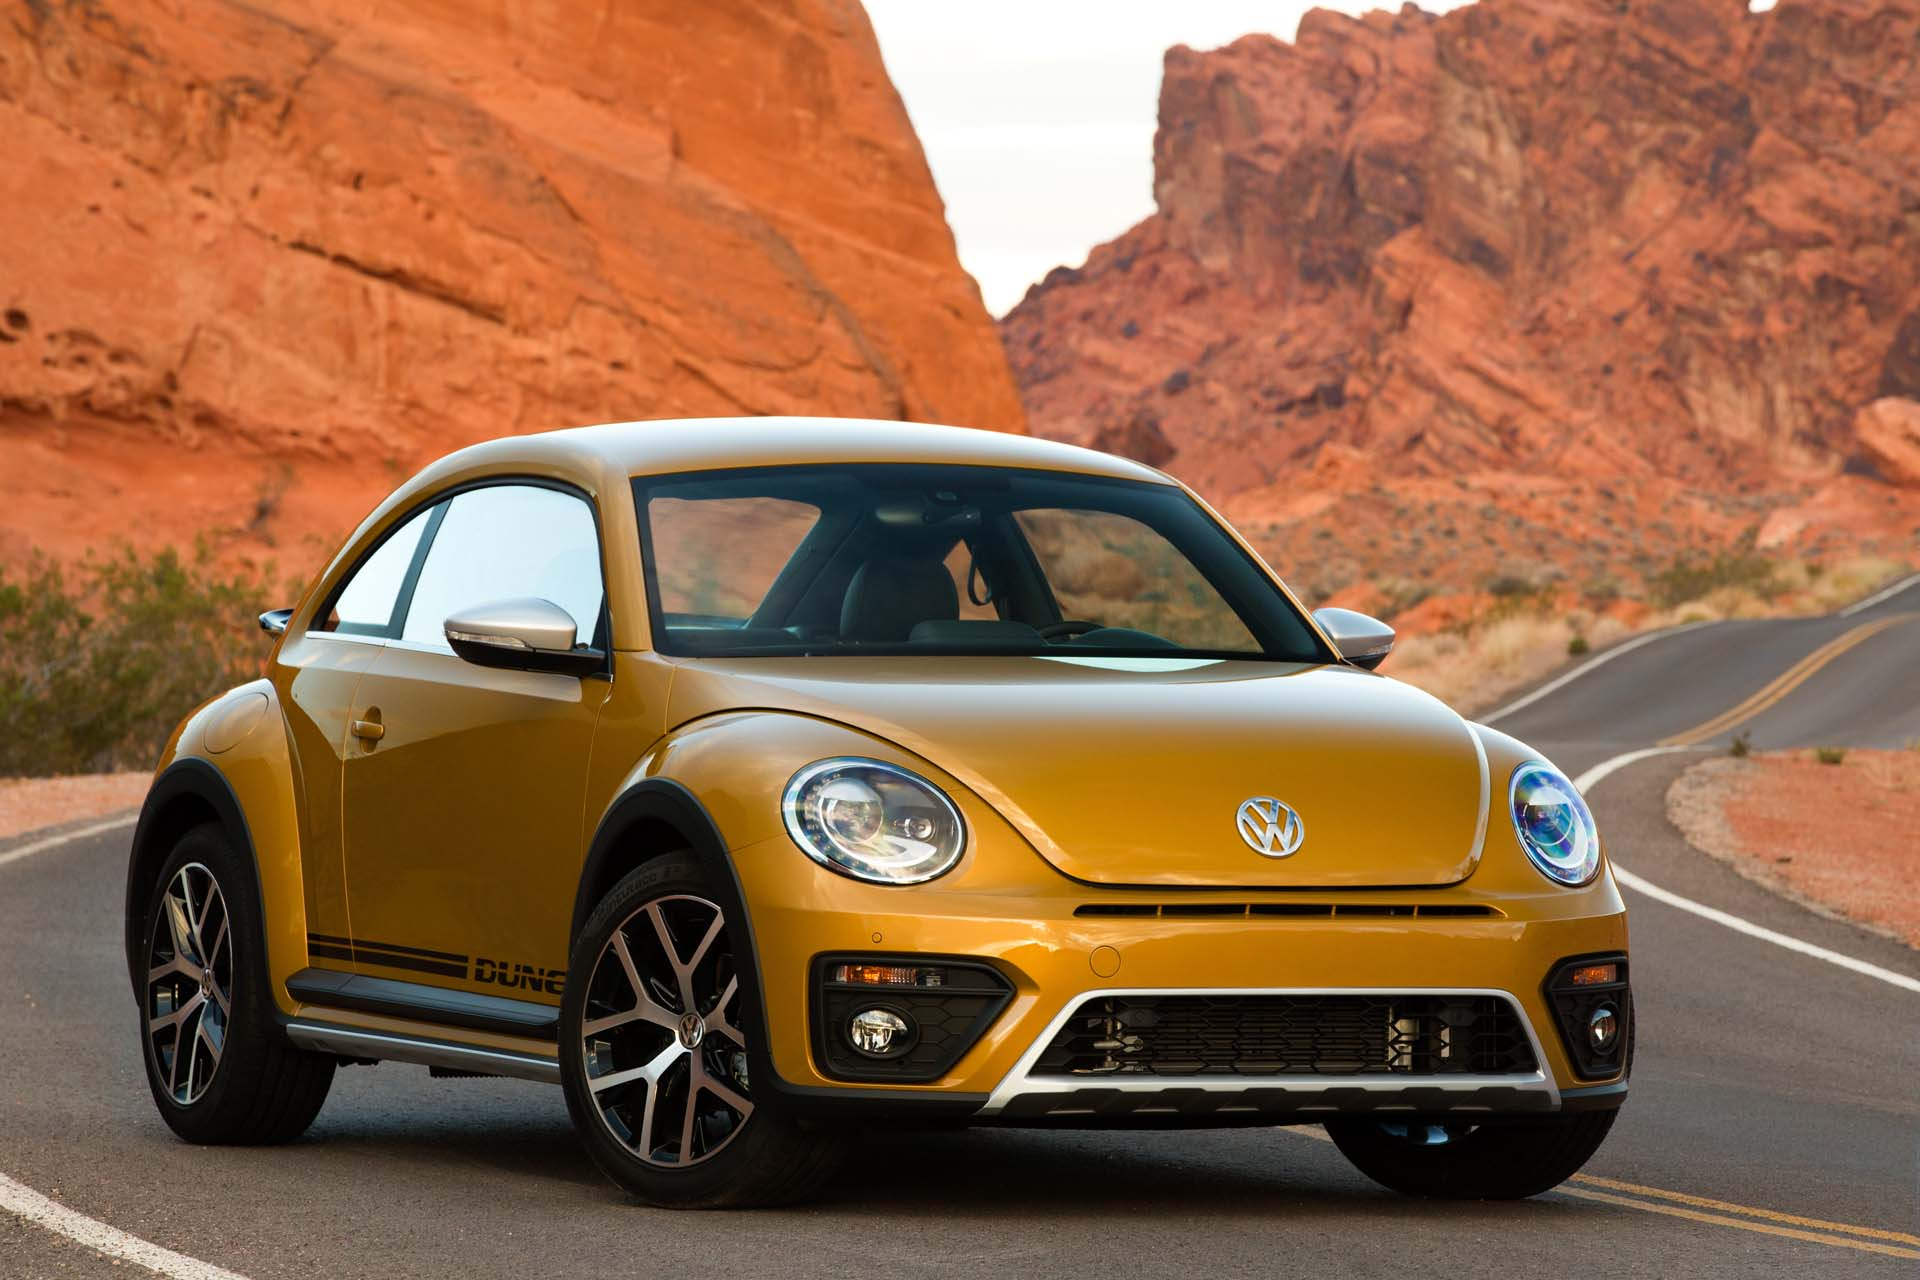 2018 Volkswagen Beetle  Vw  Review  Ratings  Specs  Prices